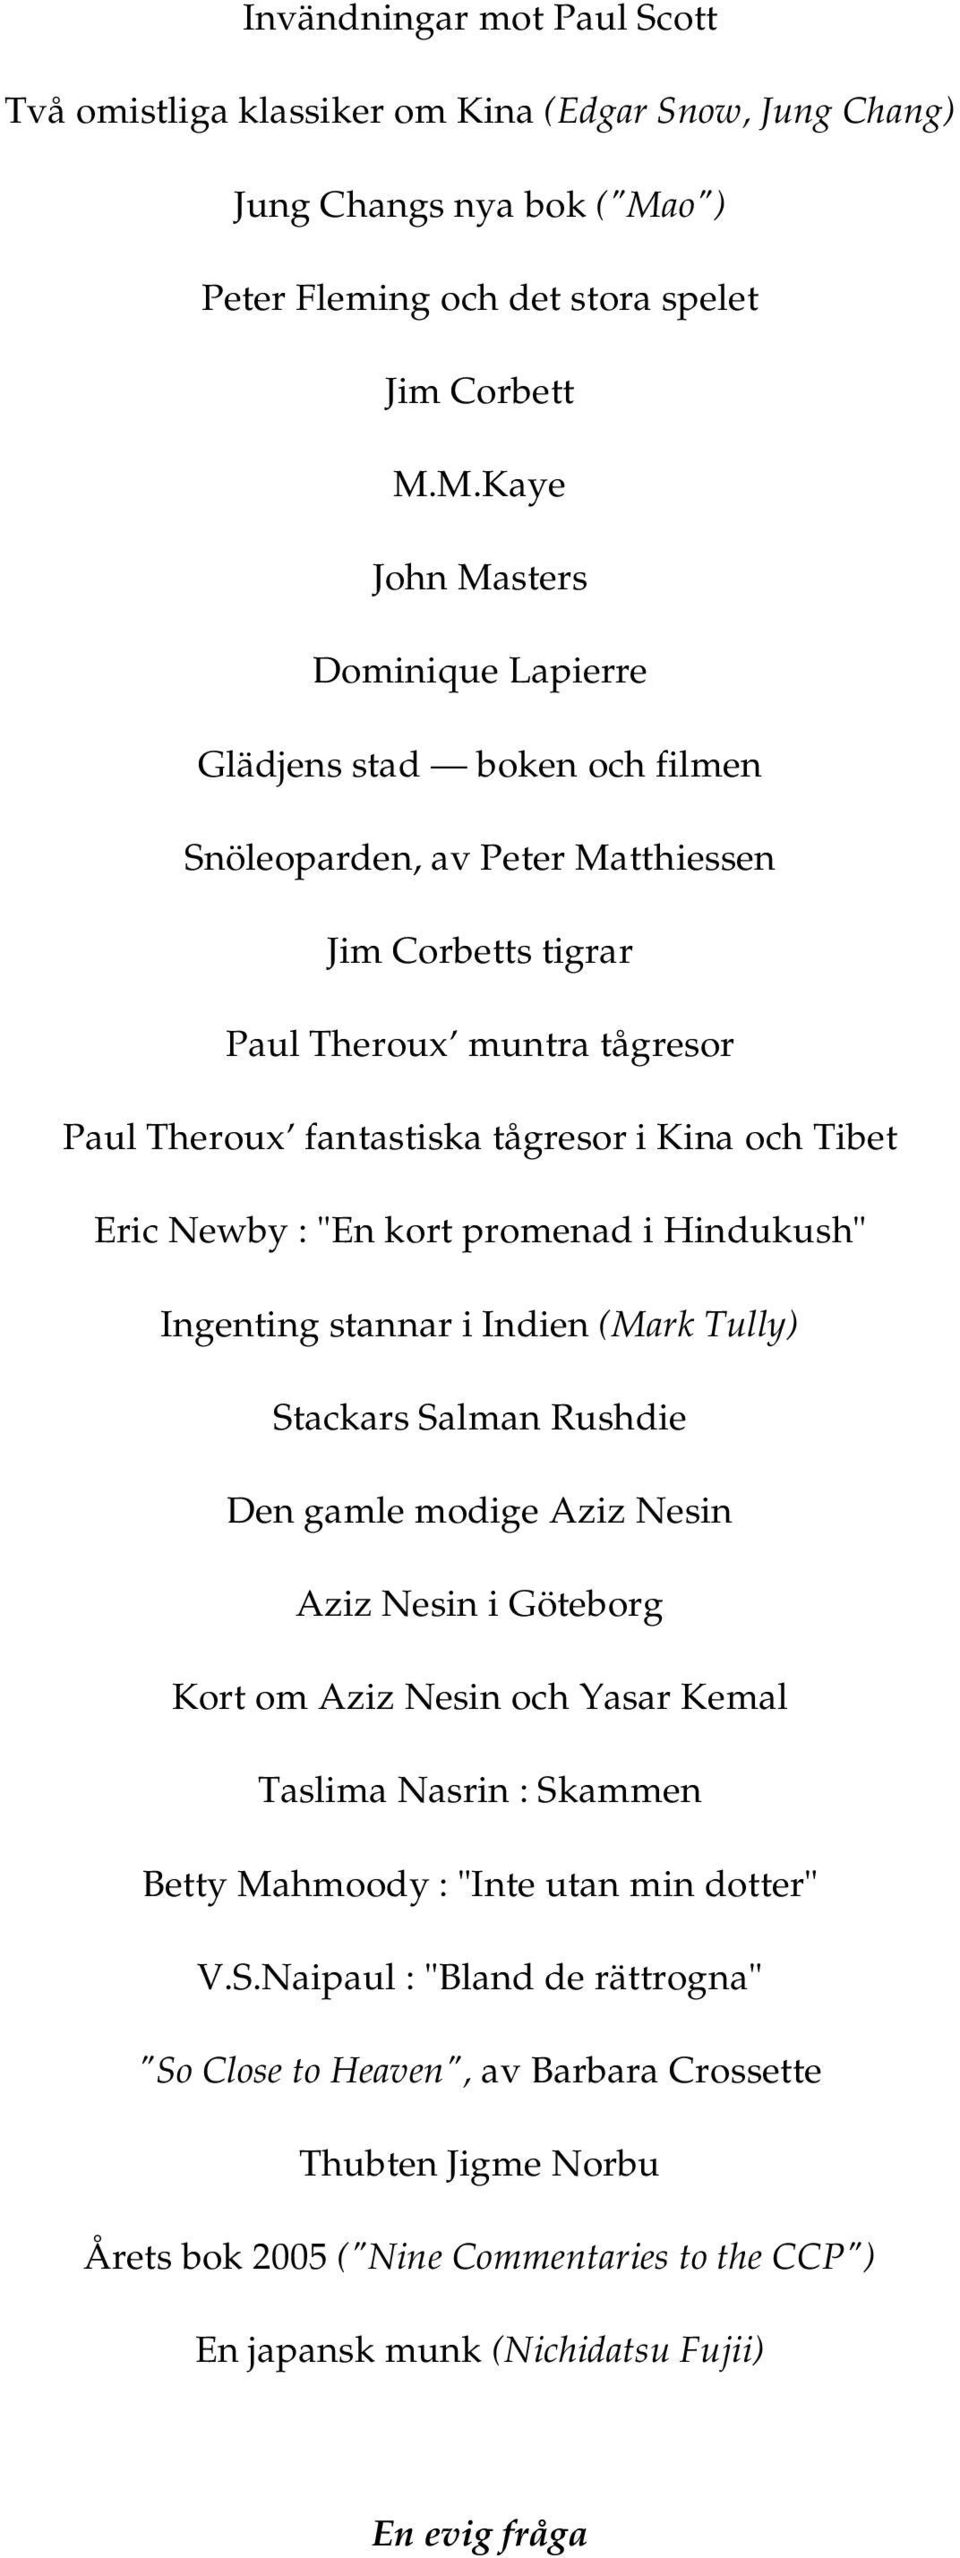 M.Kaye John Masters Dominique Lapierre Glädjens stad boken och filmen Snöleoparden, av Peter Matthiessen Jim Corbetts tigrar Paul Theroux muntra tågresor Paul Theroux fantastiska tågresor i Kina och